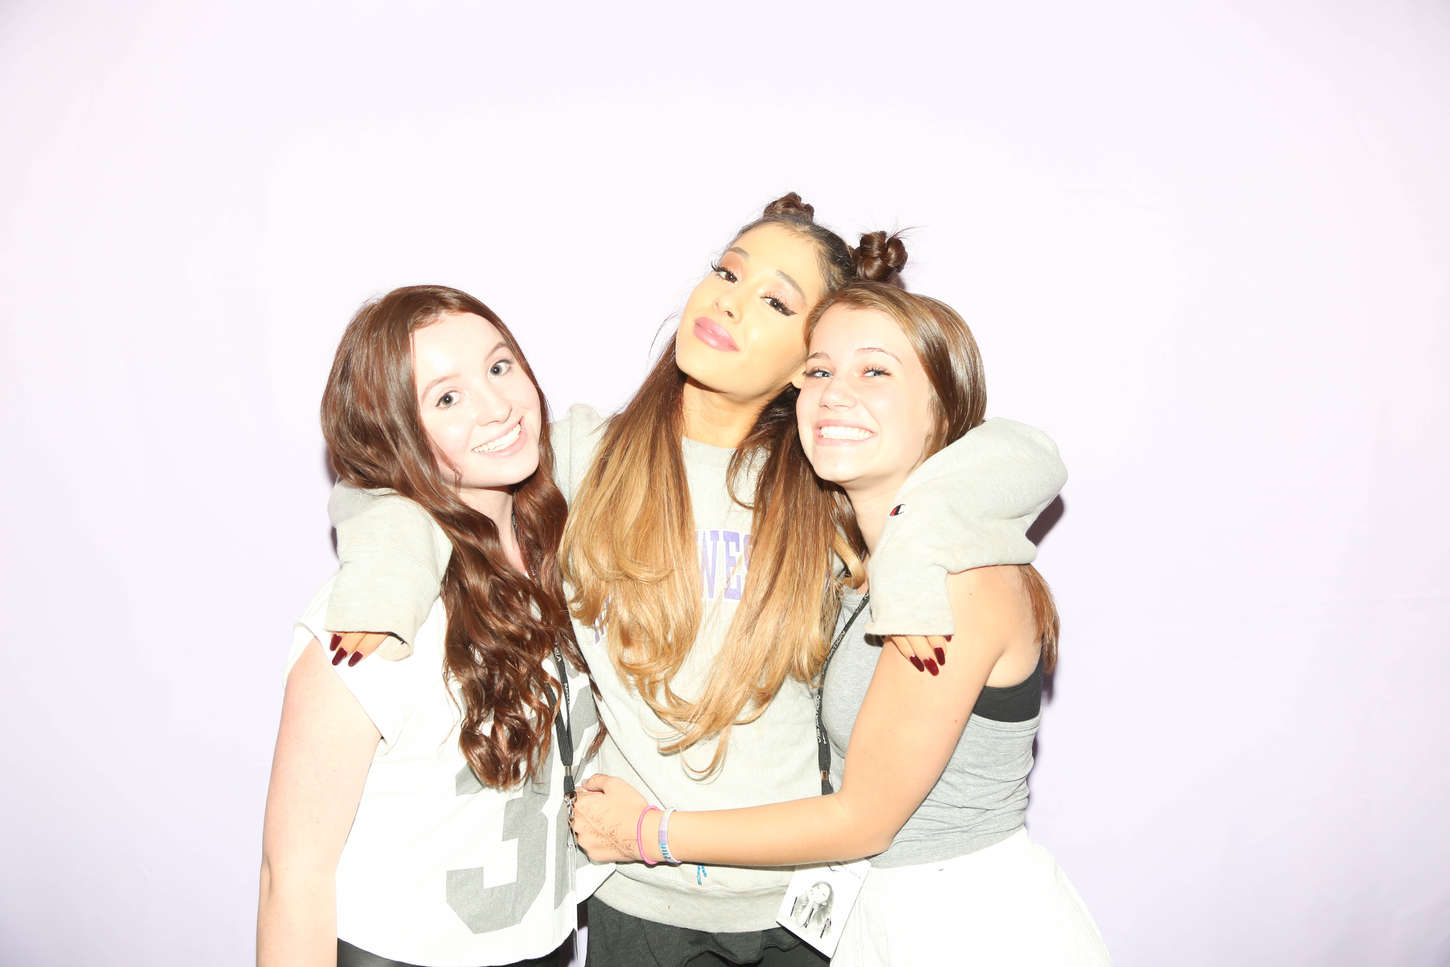 Ariana grande meet and greet in boise 10 gotceleb ariana grande meet and greet in boise 10 m4hsunfo